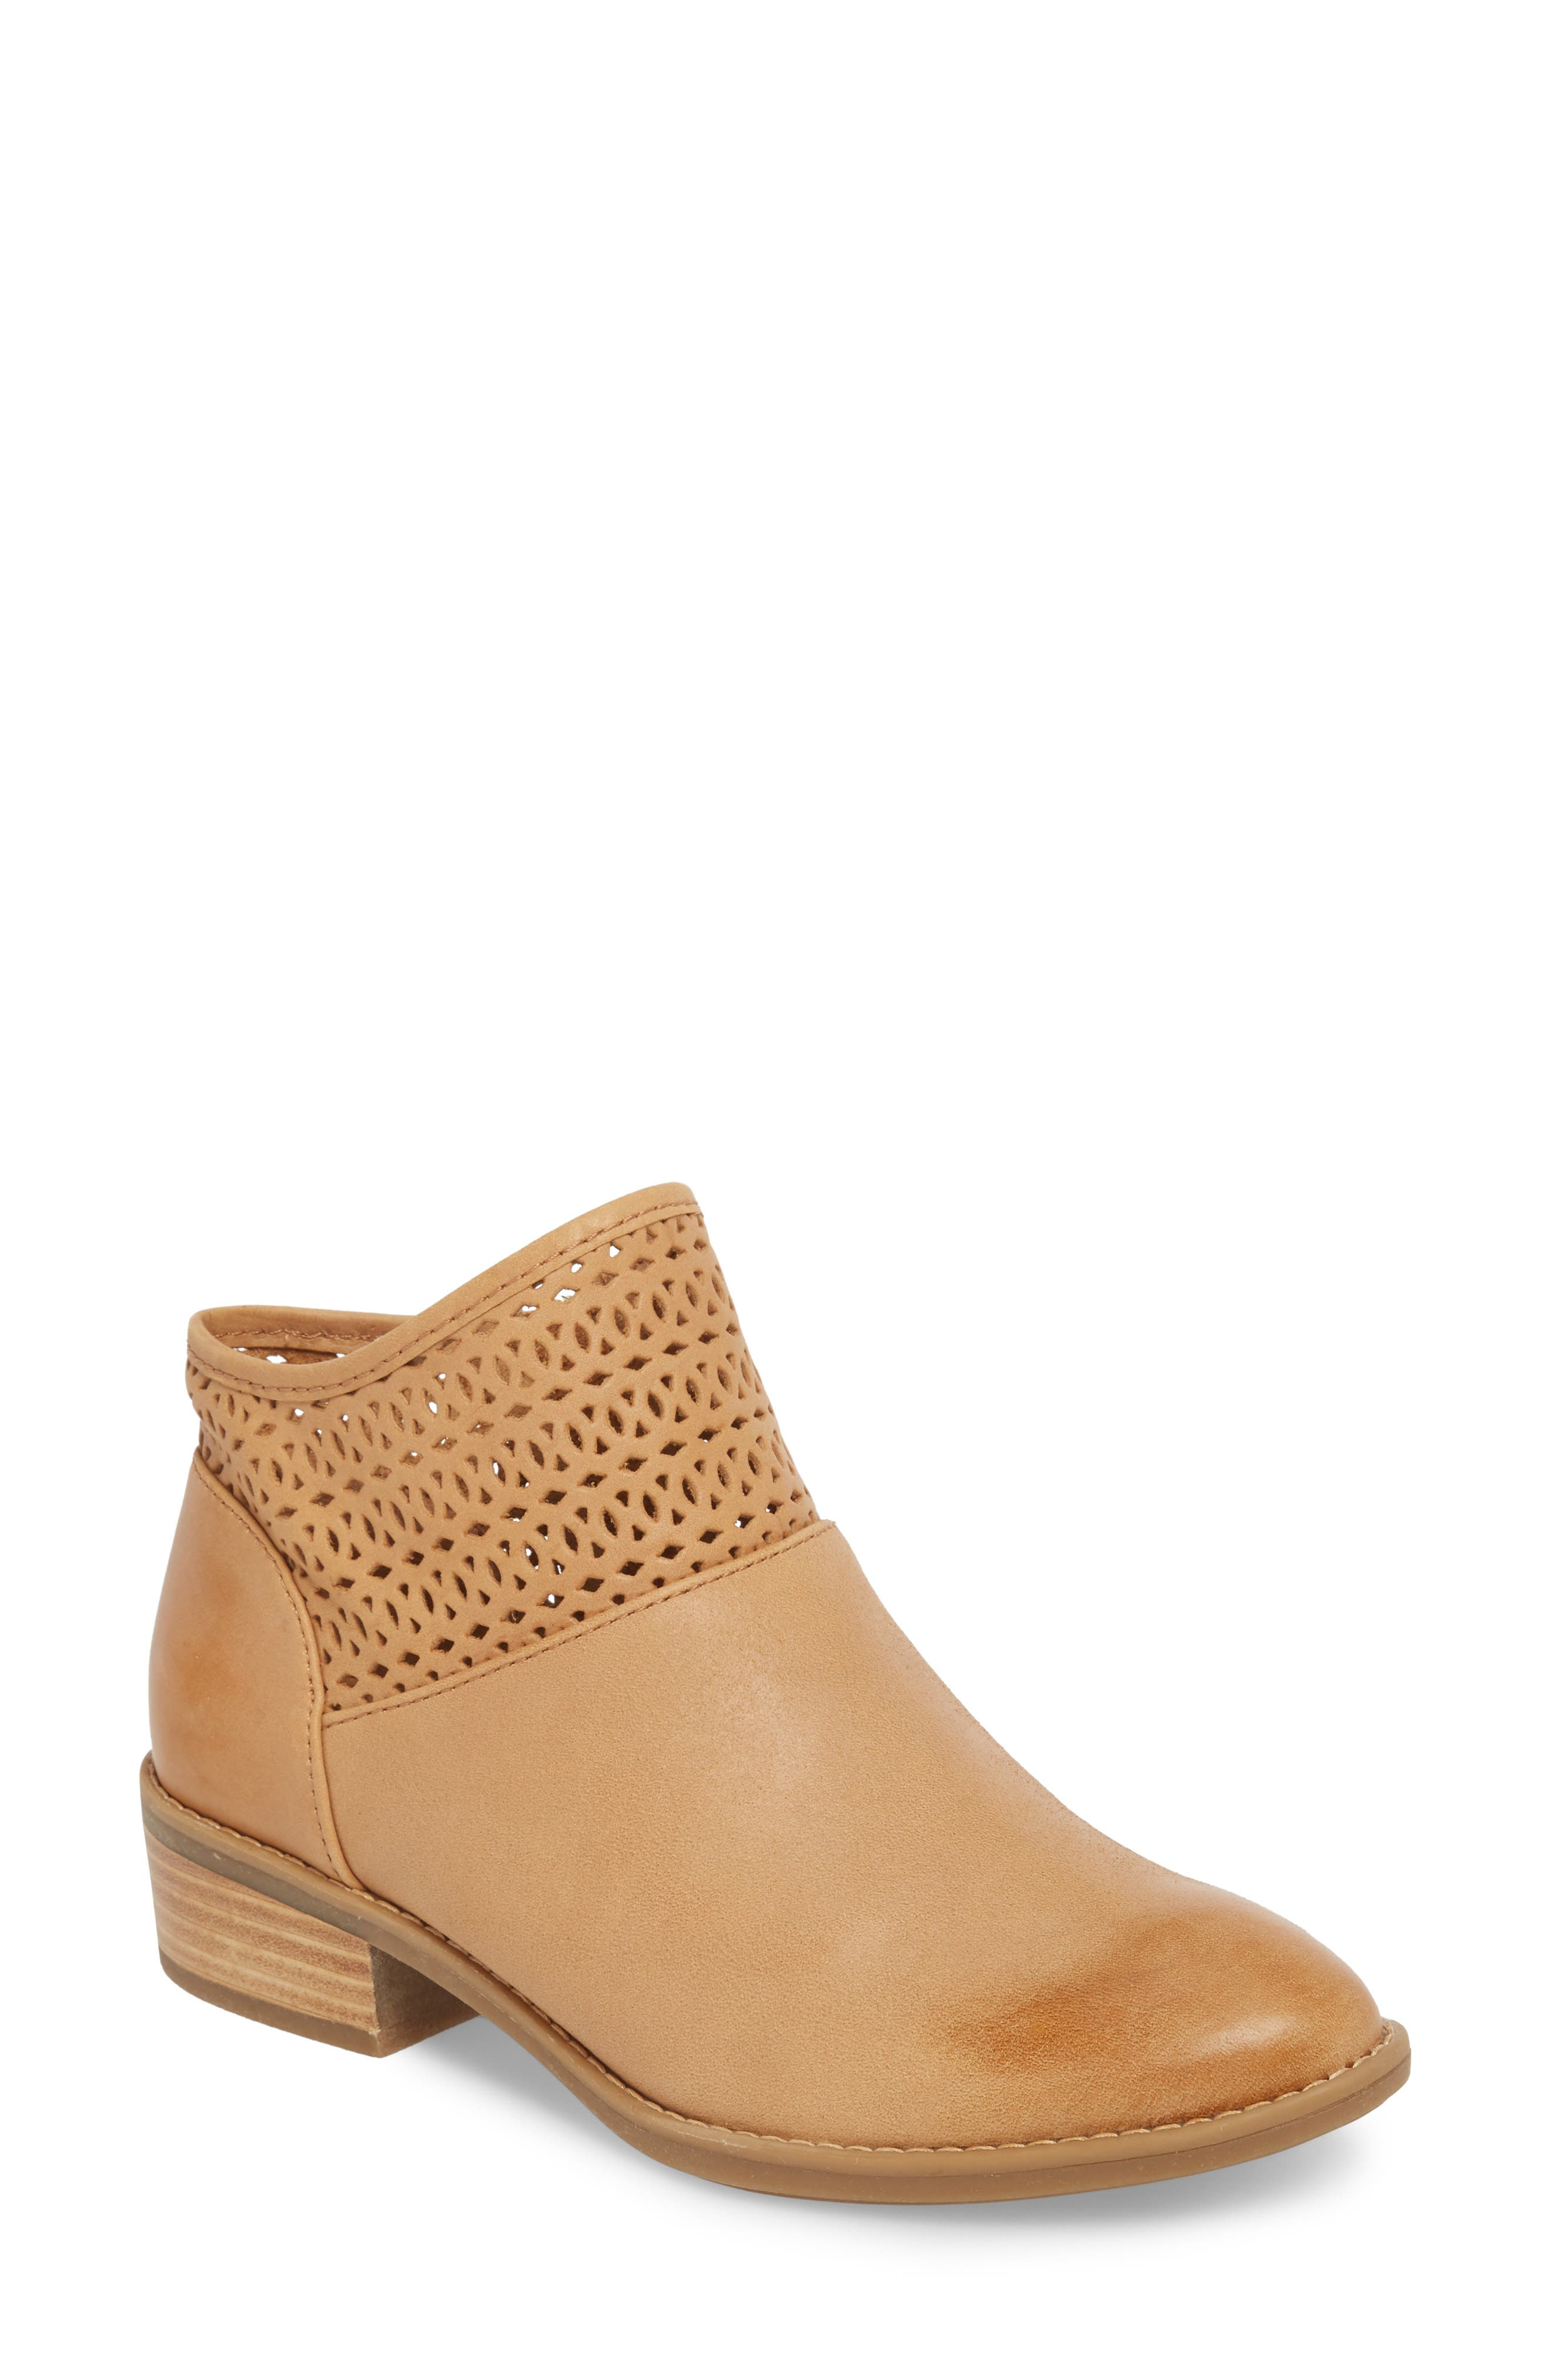 Caileen Bootie,                         Main,                         color, NEW CARAMEL